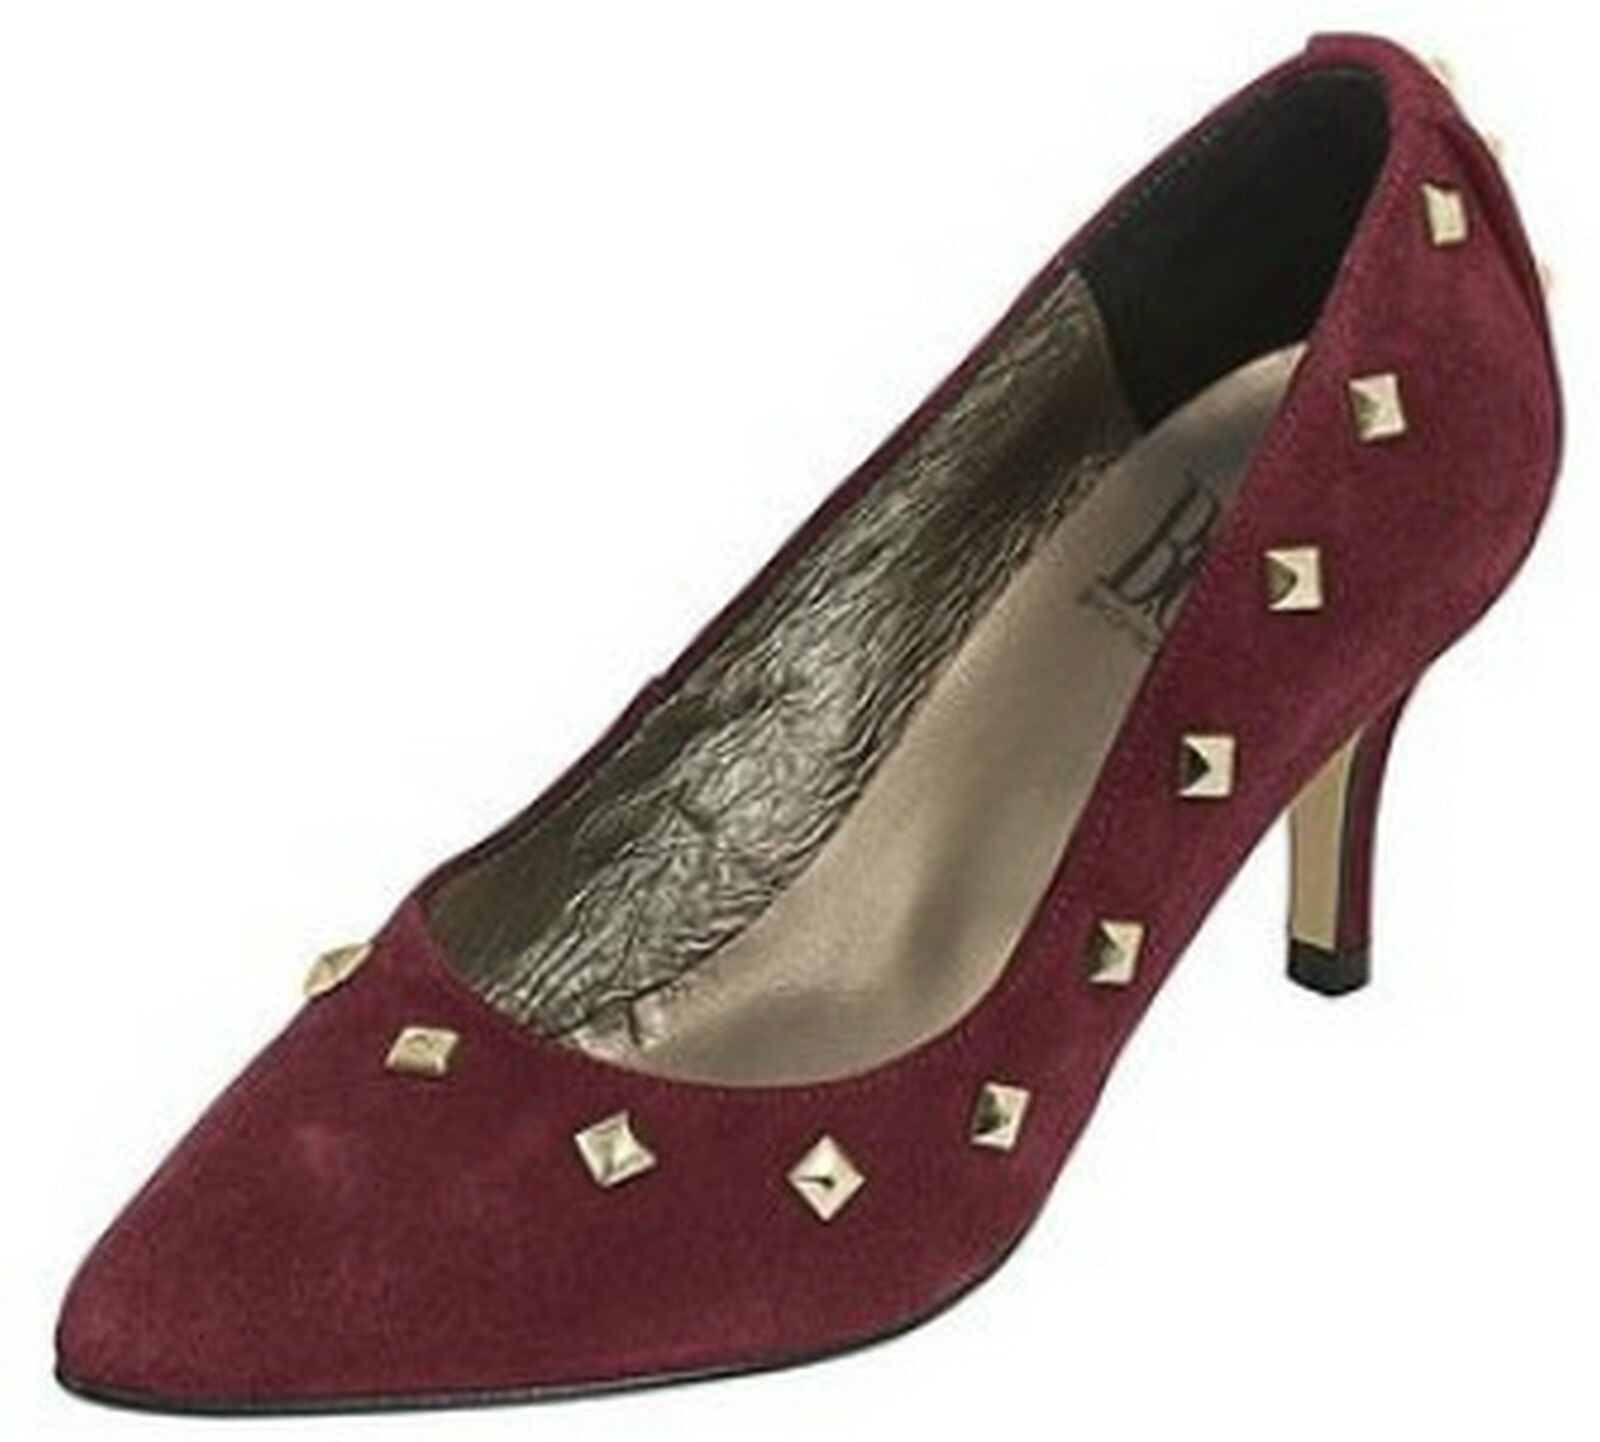 Best Connections BC Pumps LEDER 37 Elegant Bordeaux Rot Spain Schuh Stiletto Neu